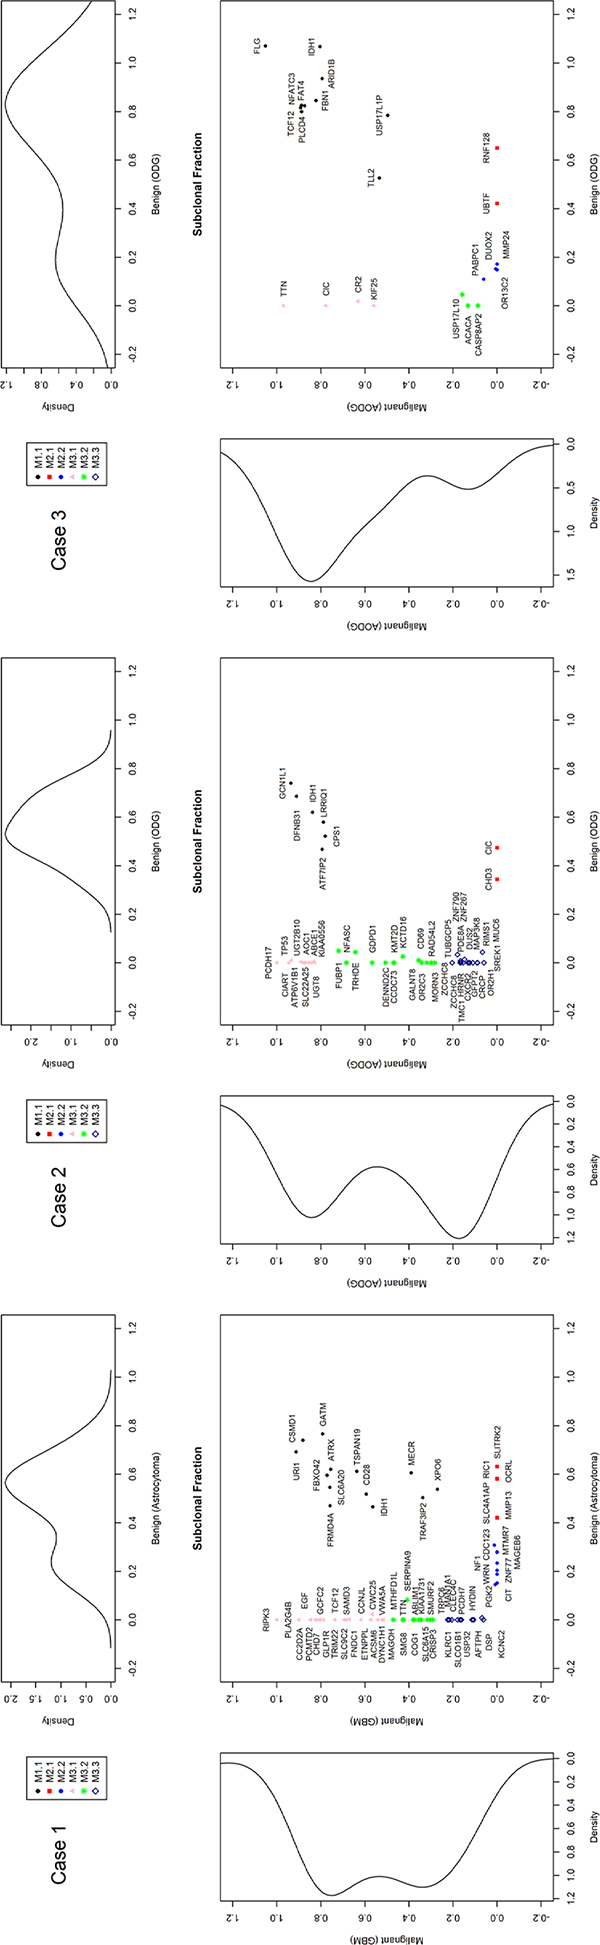 Estimated clonal fractions and their genetic signatures based on somatic point mutation allele frequency and copy number status.